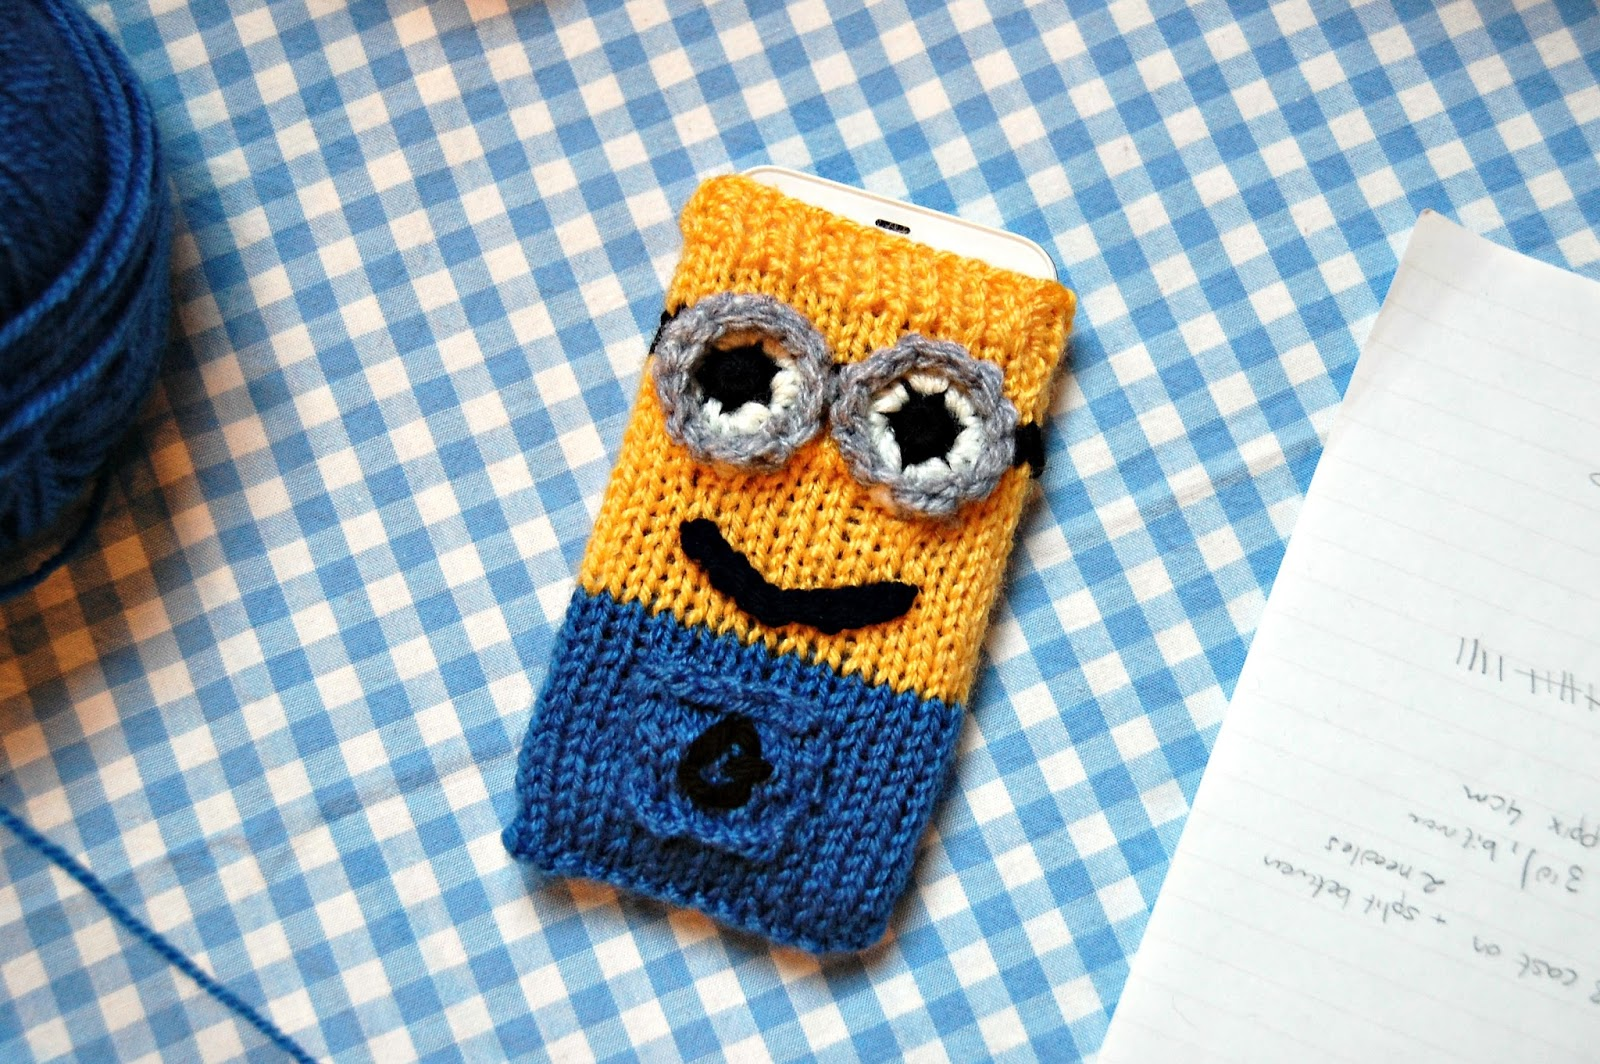 Free Knitting Patterns Baby Hat : the geeky knitter: minion phone cover - free knitting pattern